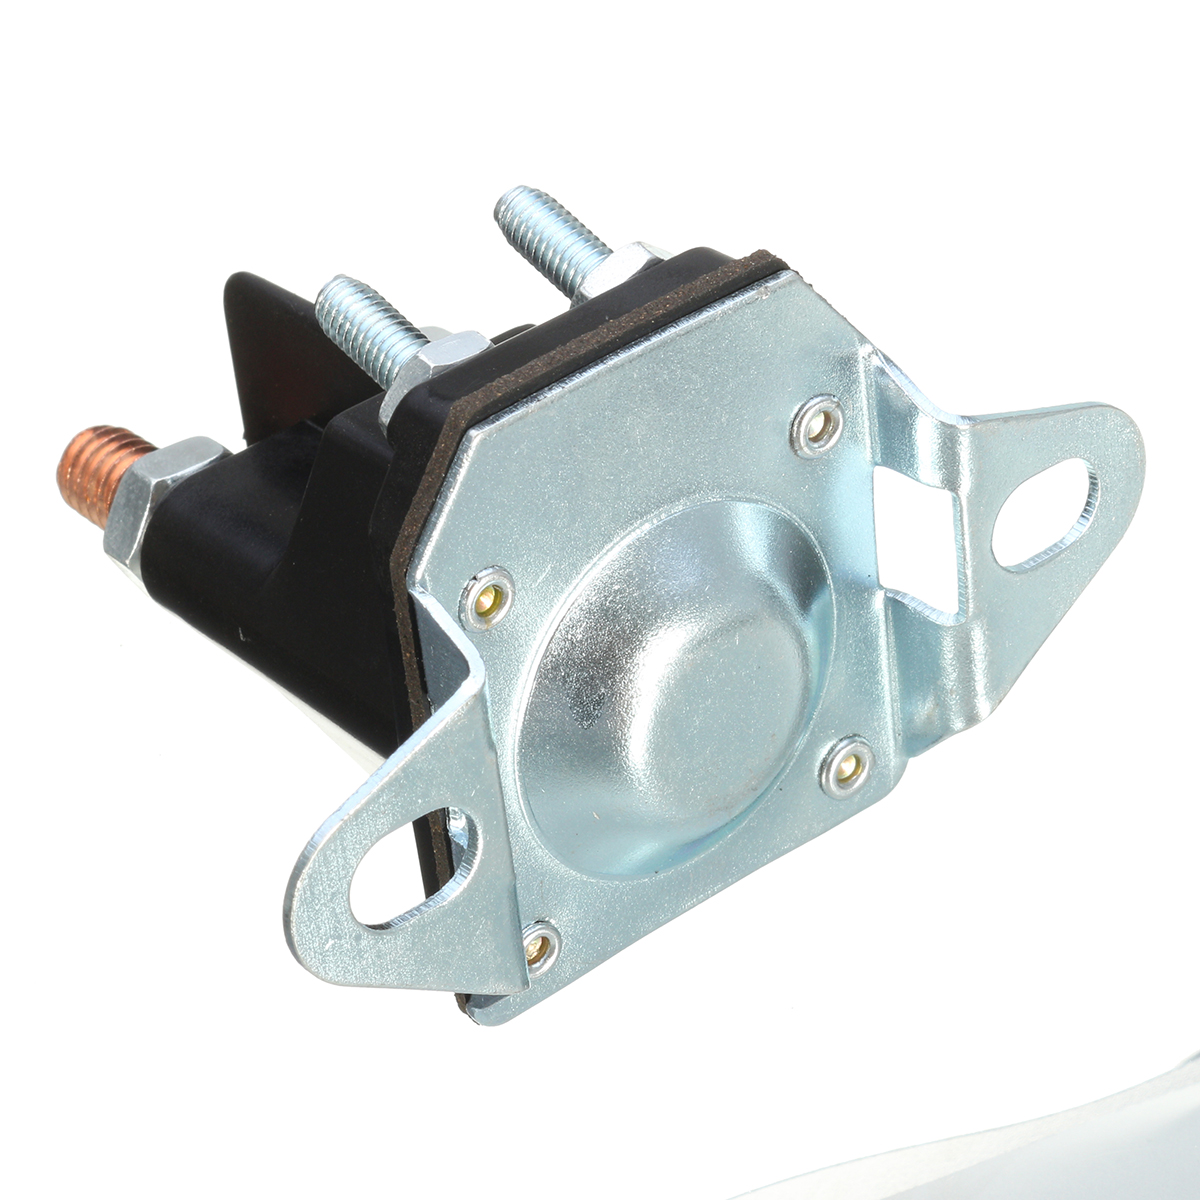 4 Pole Starter Solenoid Relay Switch Universal Stens For MTD Lawnmower New